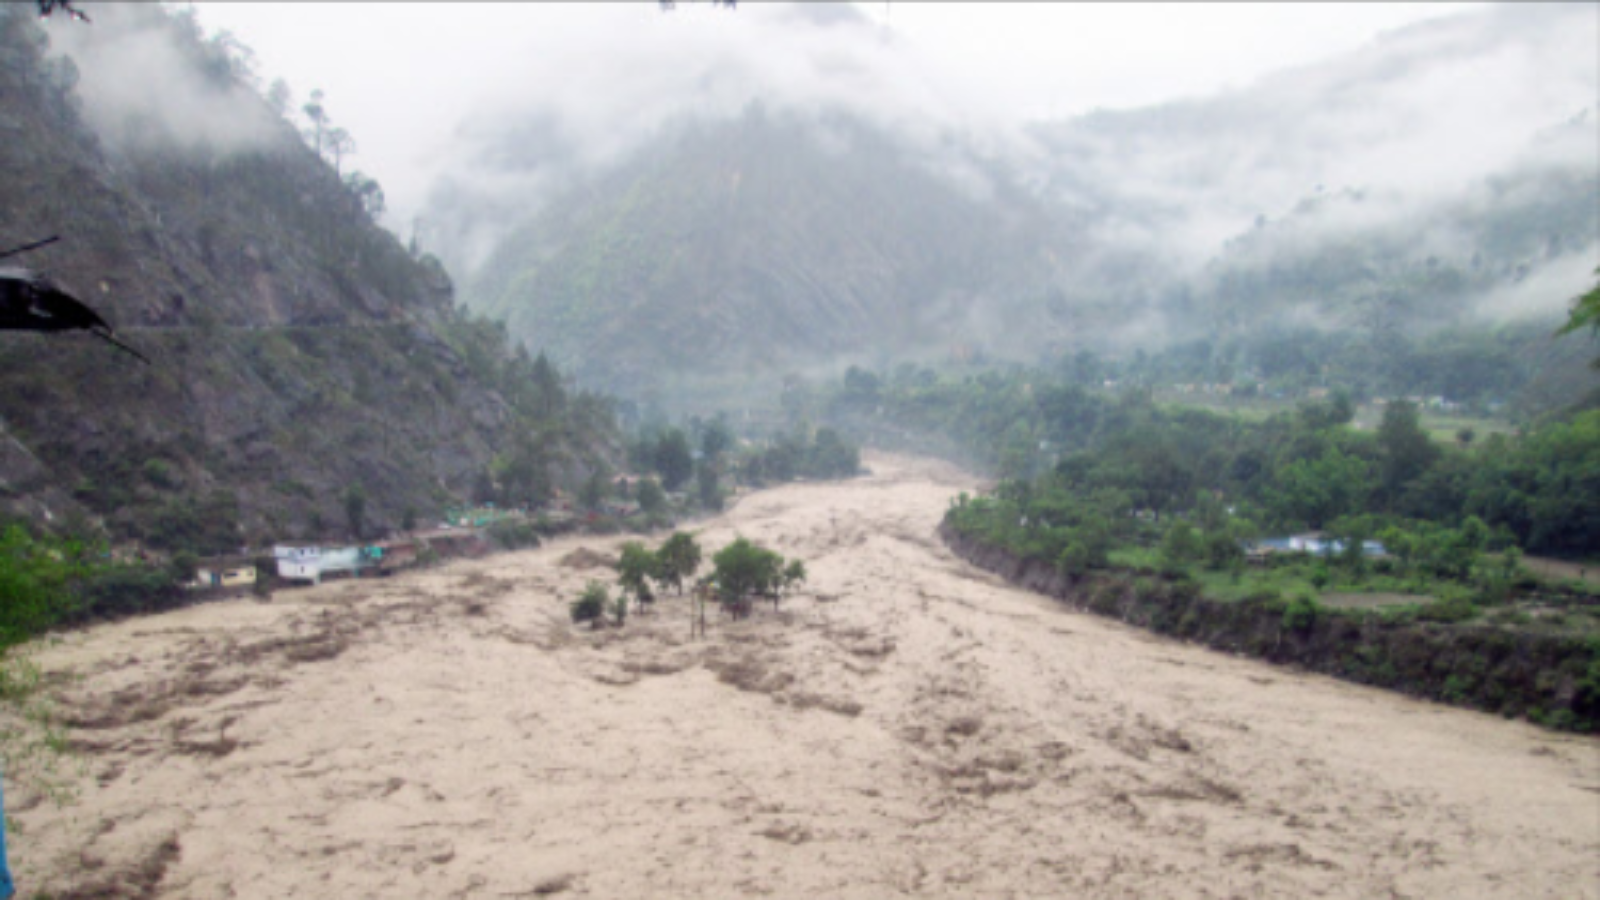 uttarakhand-rain-alert-issued-in-parts-of-the-state